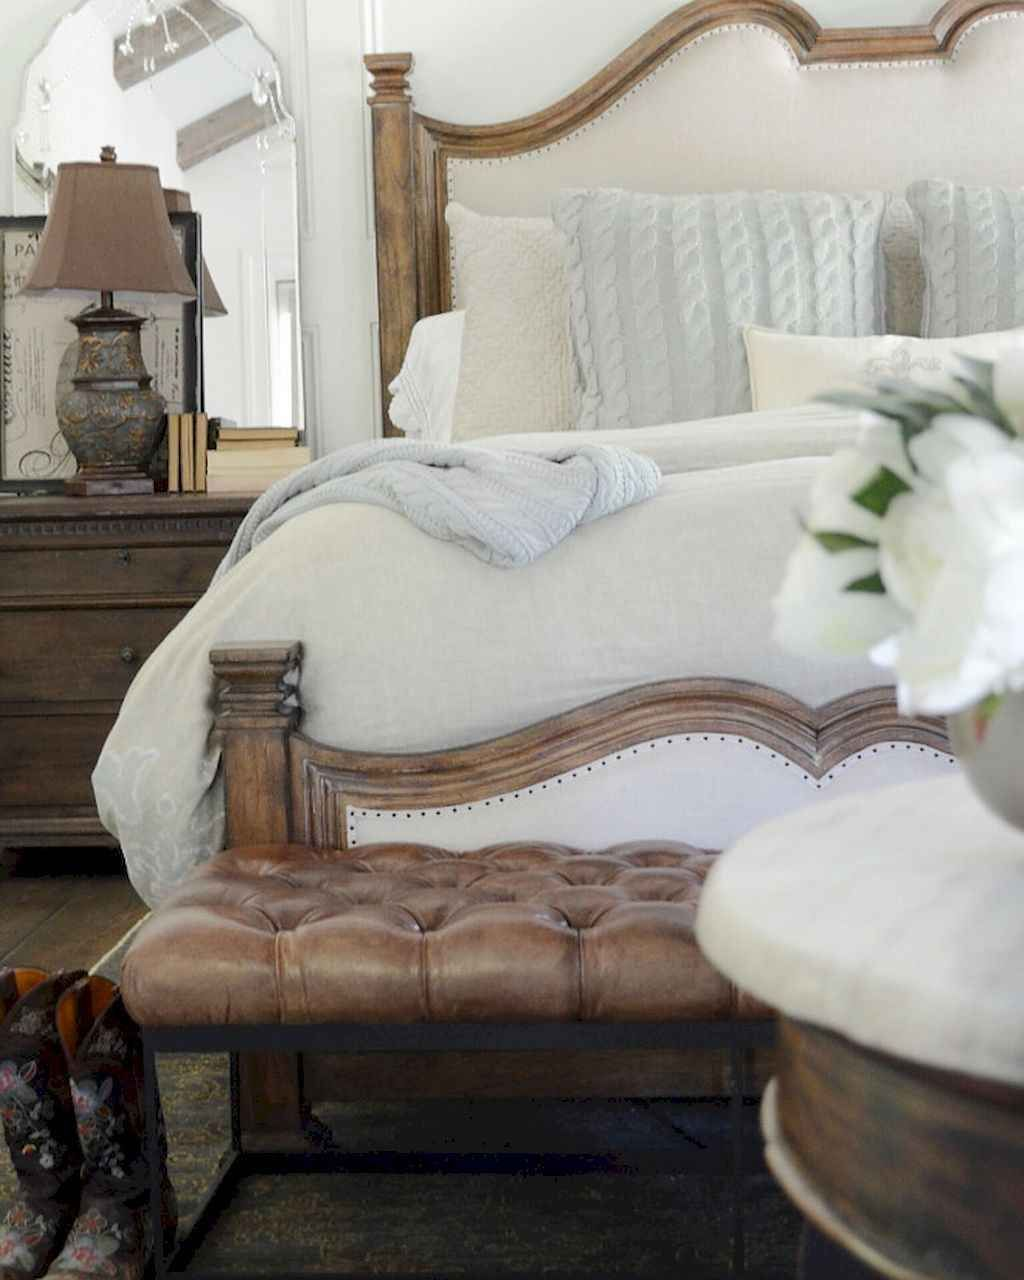 The Best Small Master Bedroom Design Ideas WIth Farmhouse Style 11